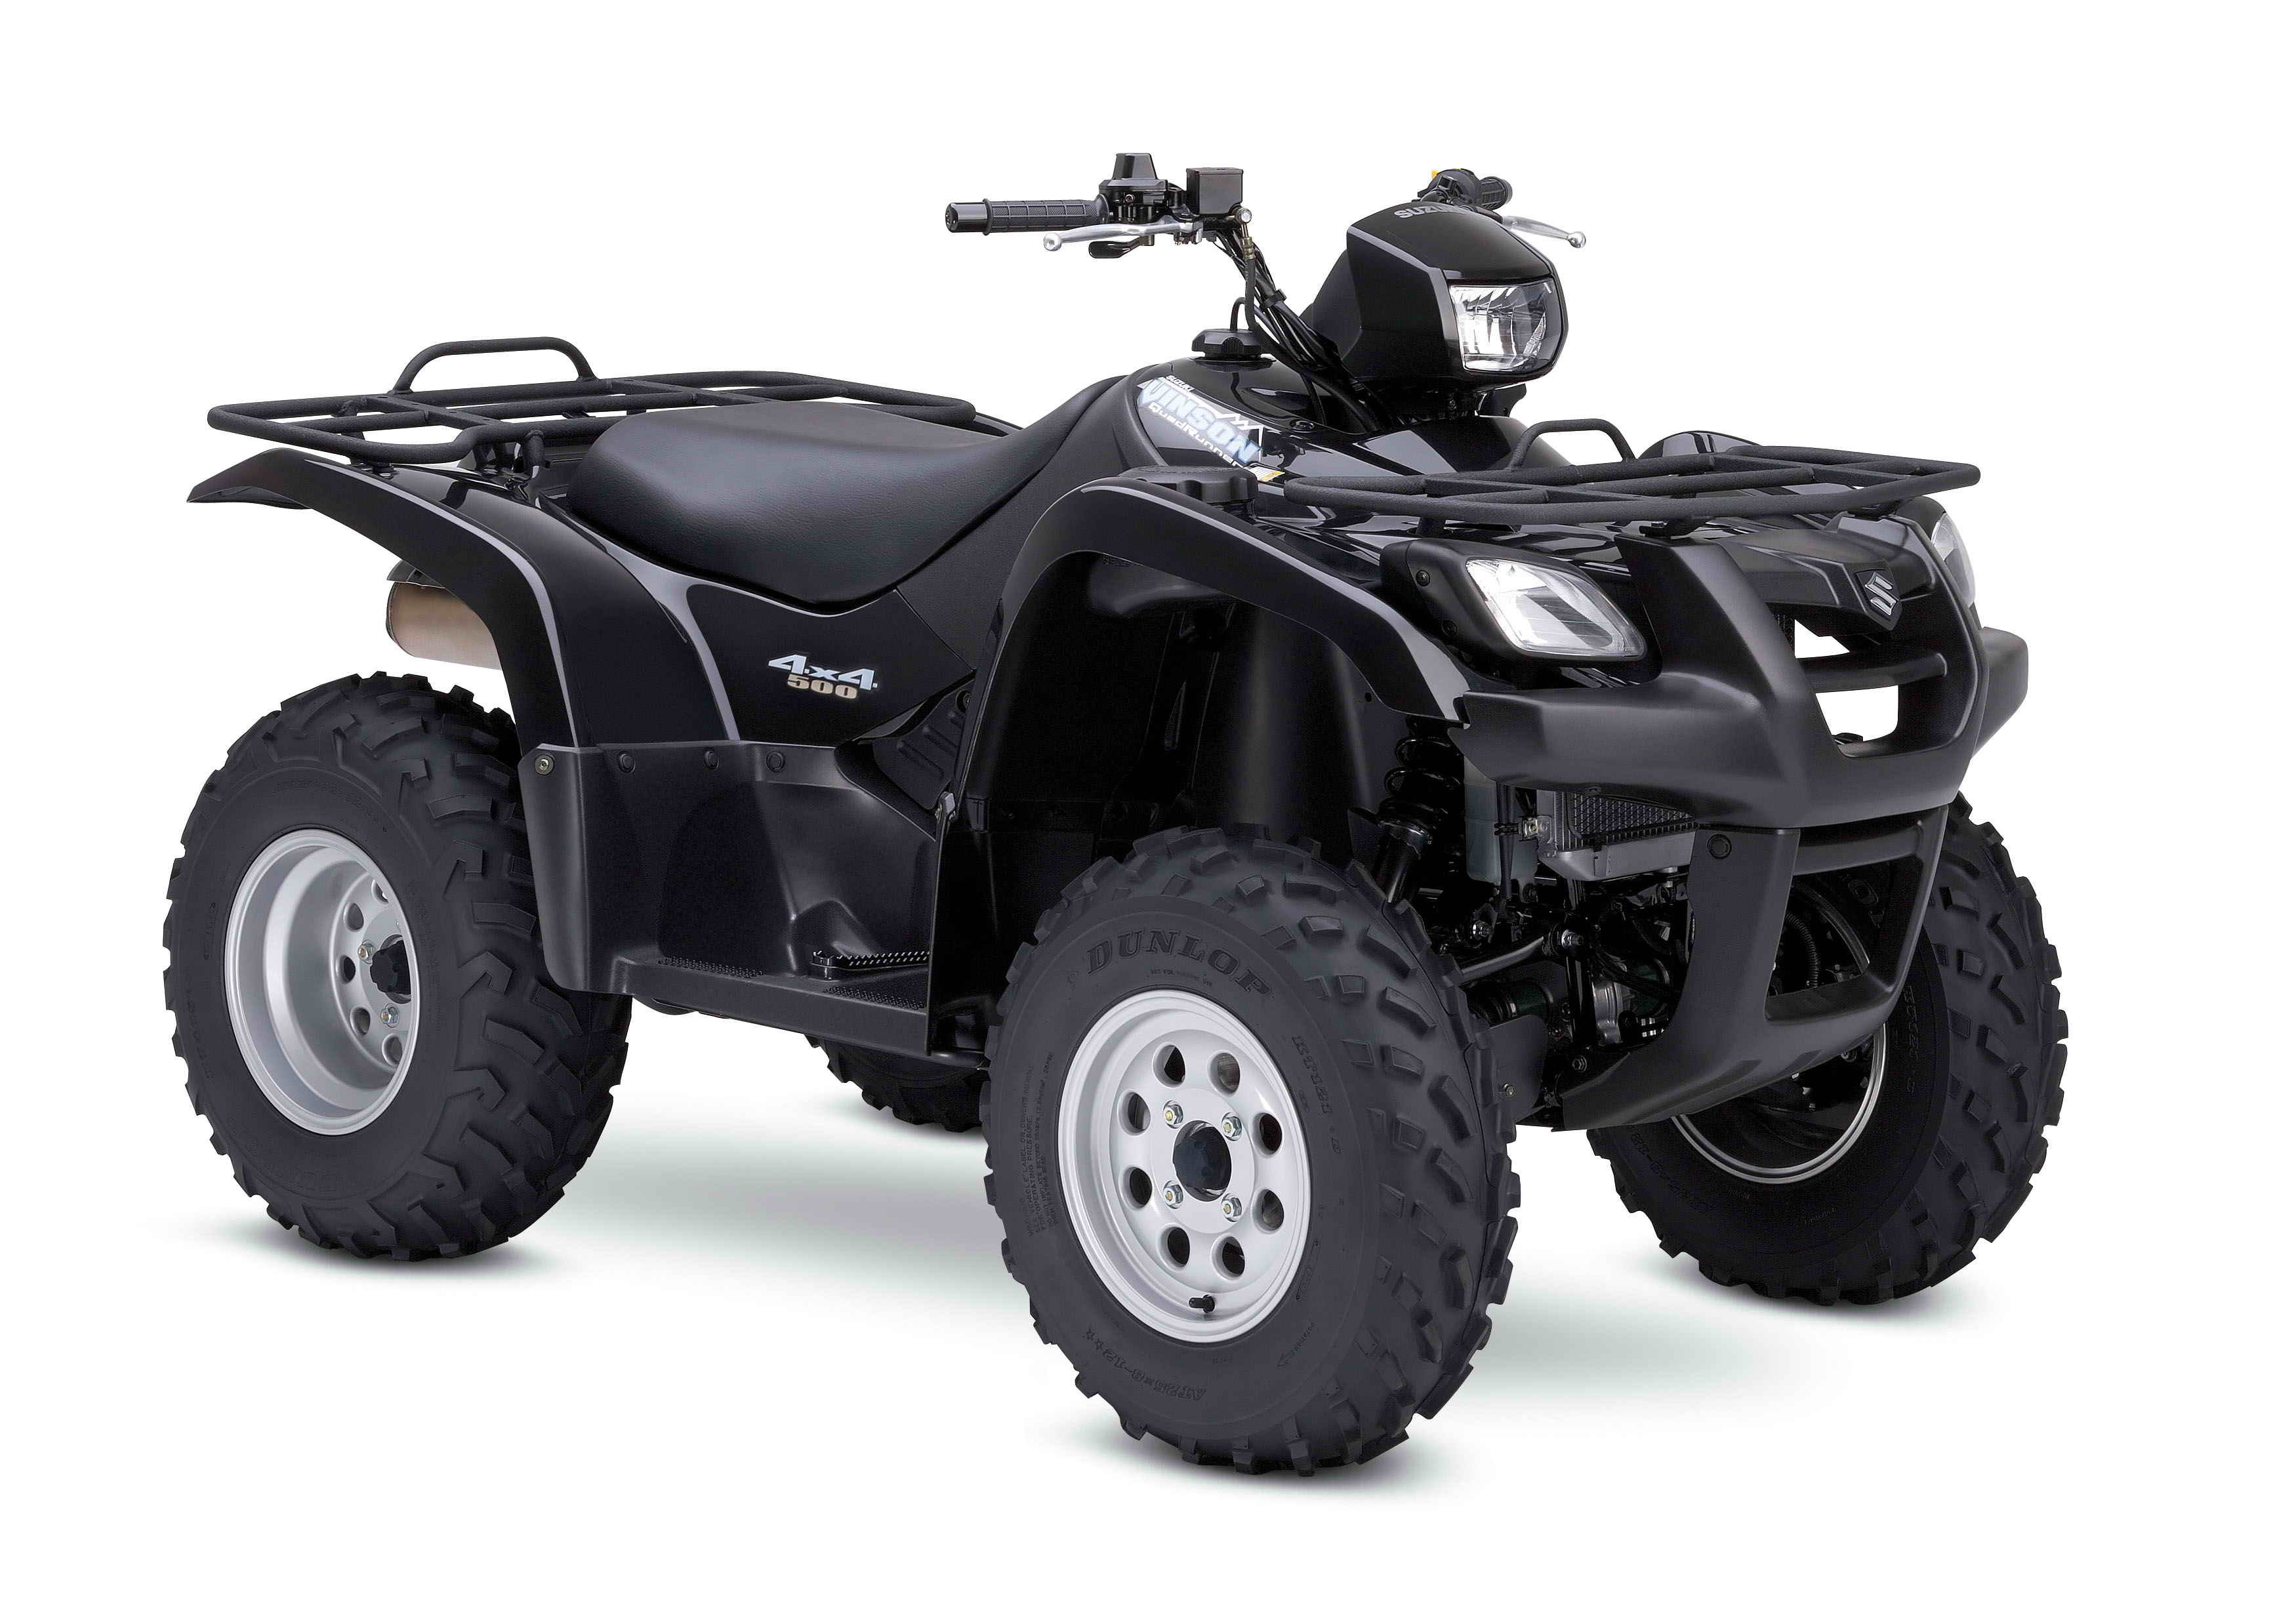 2007 Suzuki Vinson 500 4x4 Auto | Top Speed. »